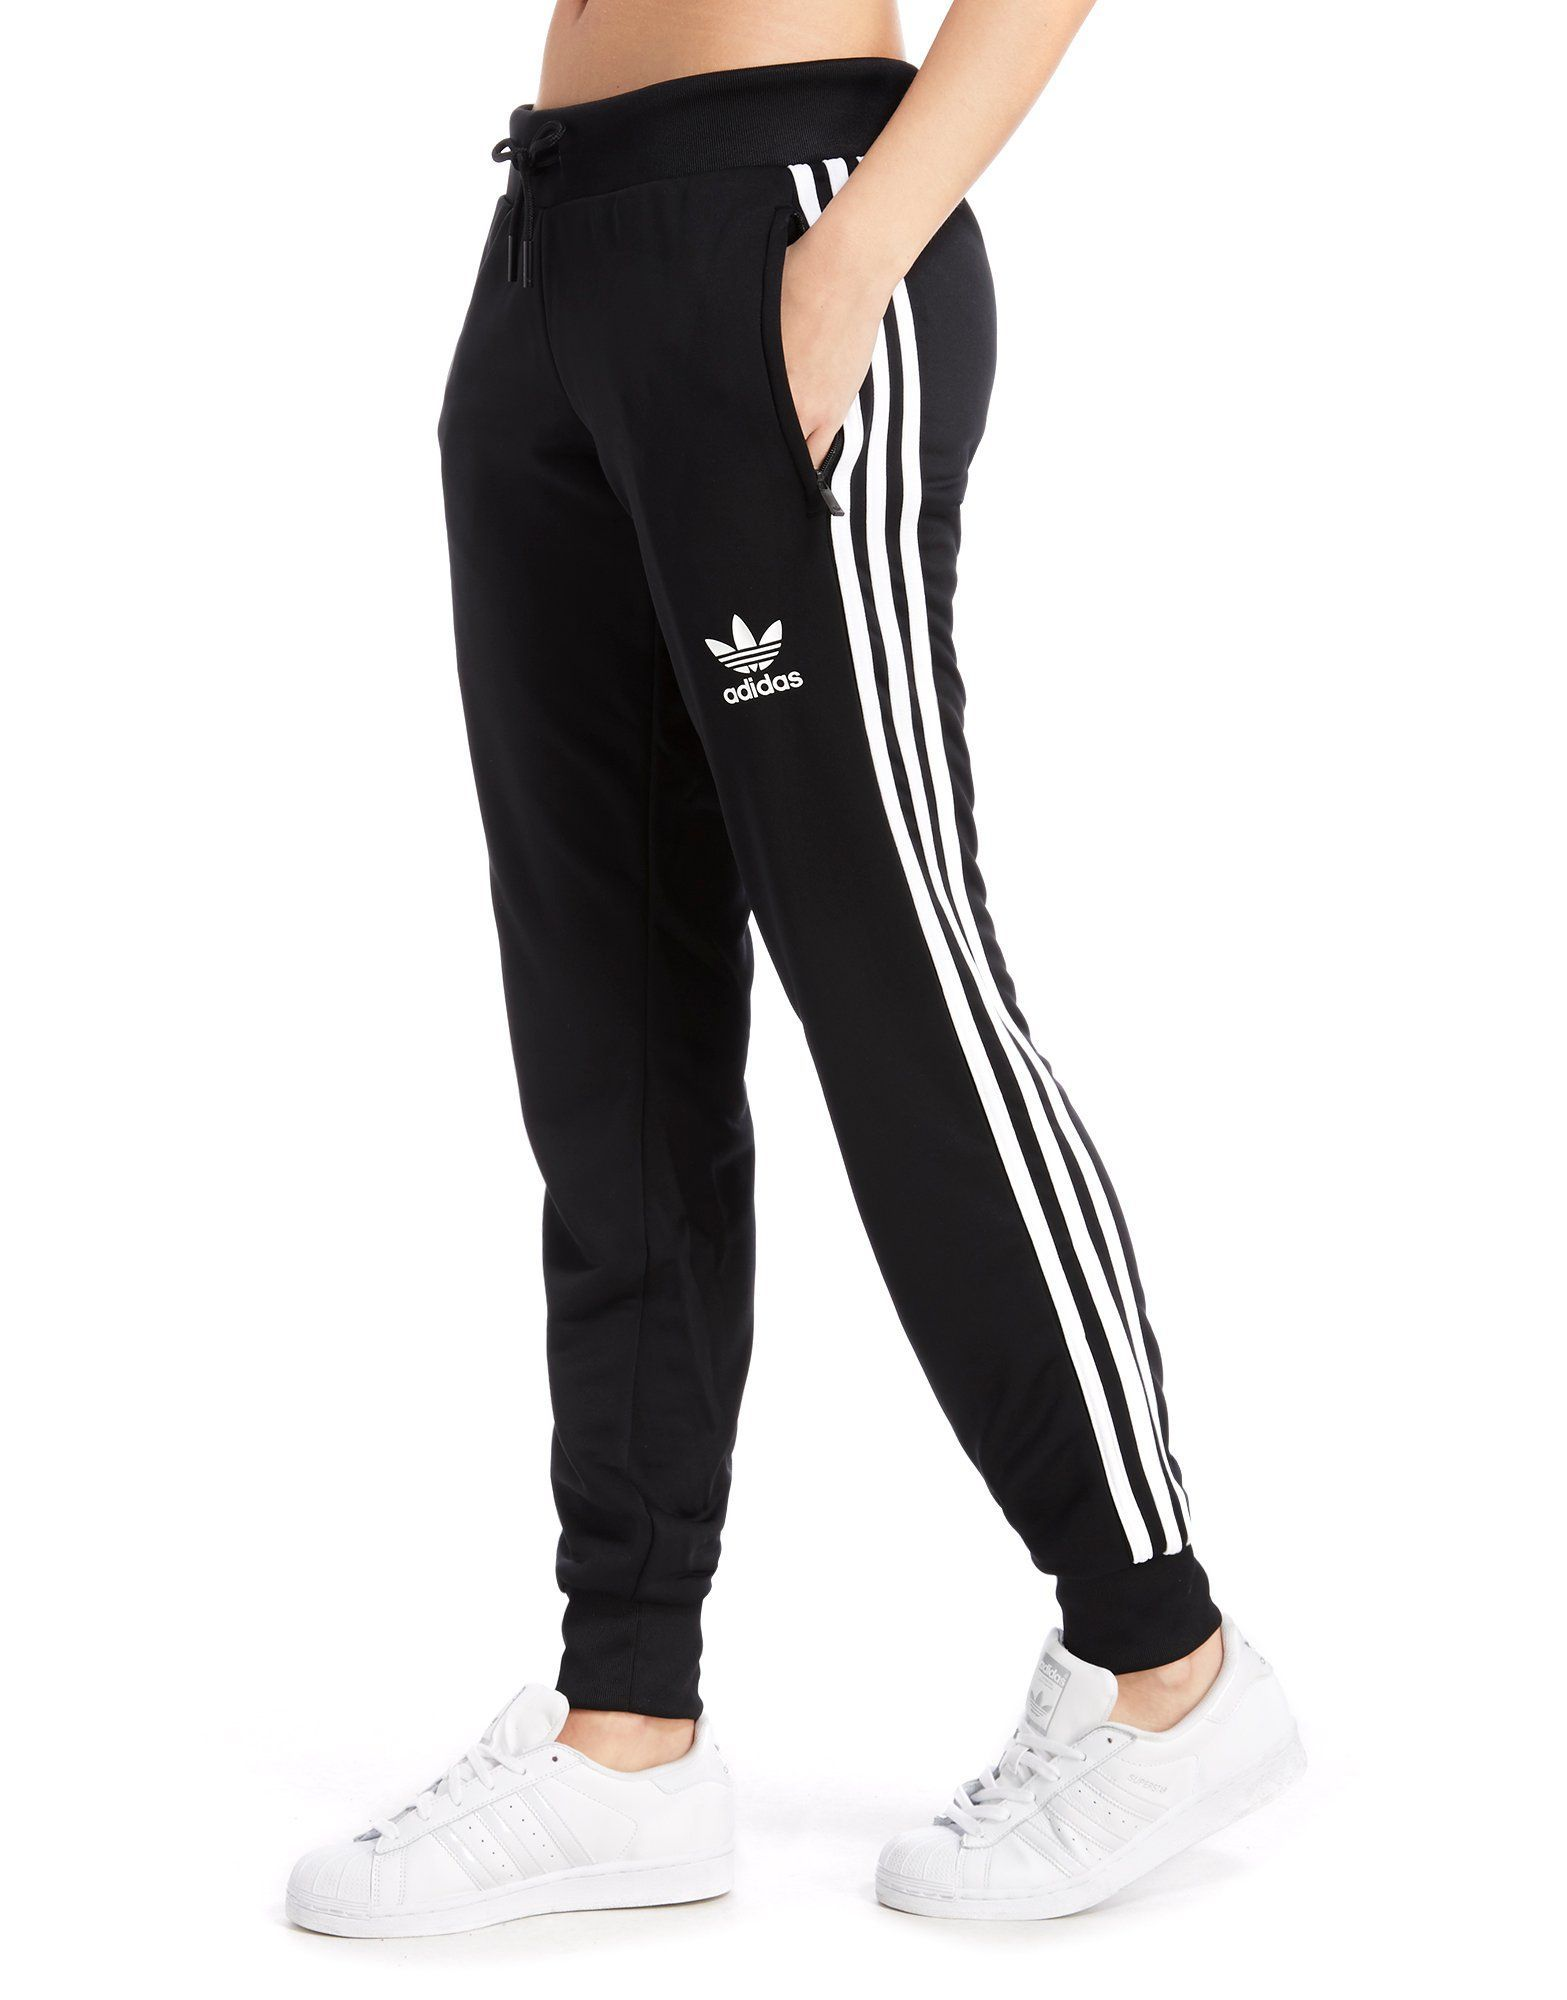 adidas Originals 3-Stripes Trefoil Fleece Pant - Z6664